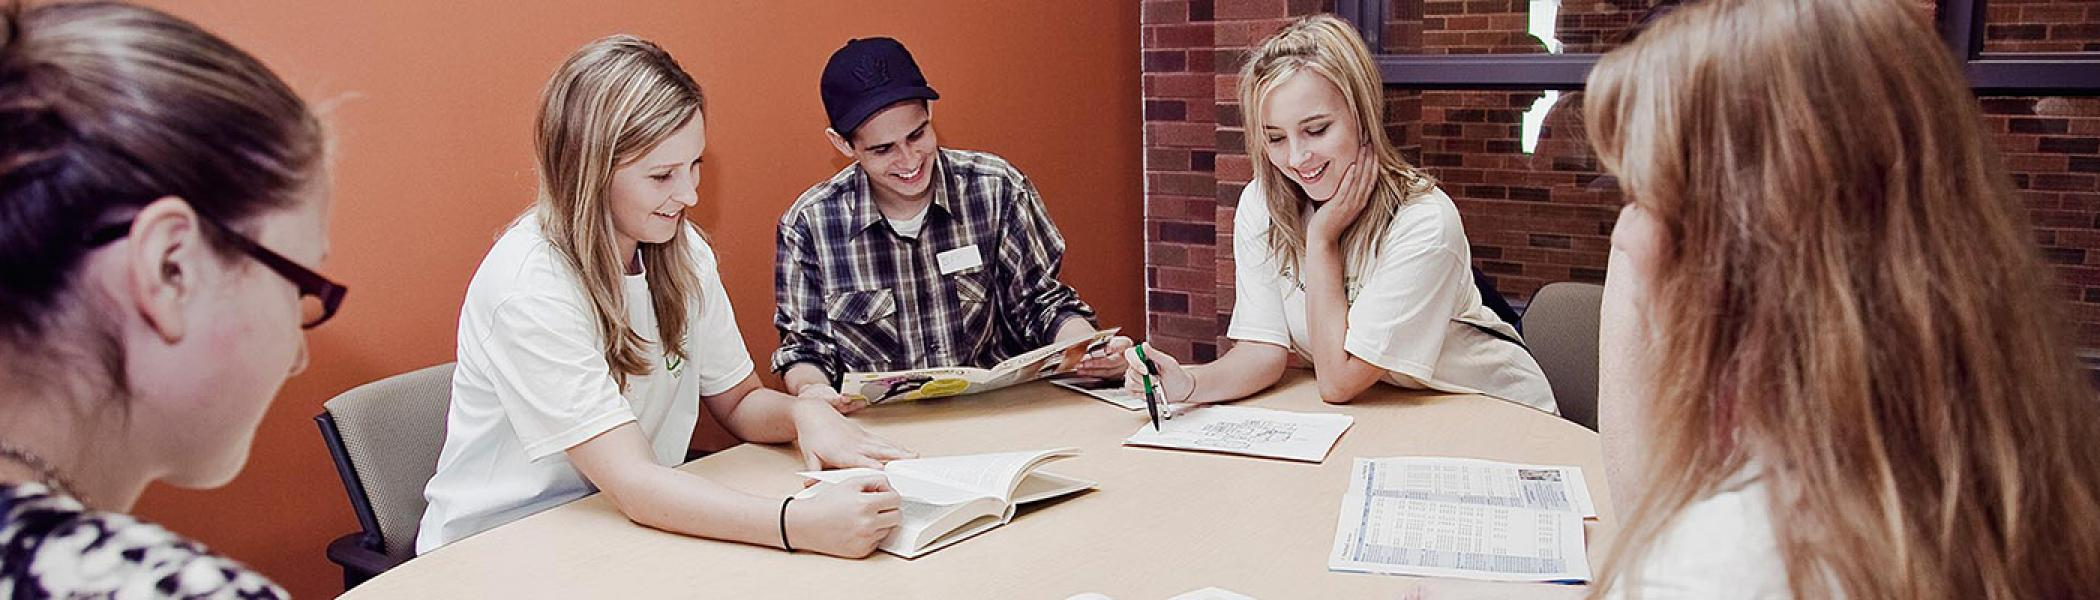 Trent University Durham students studying together in Durham campus.